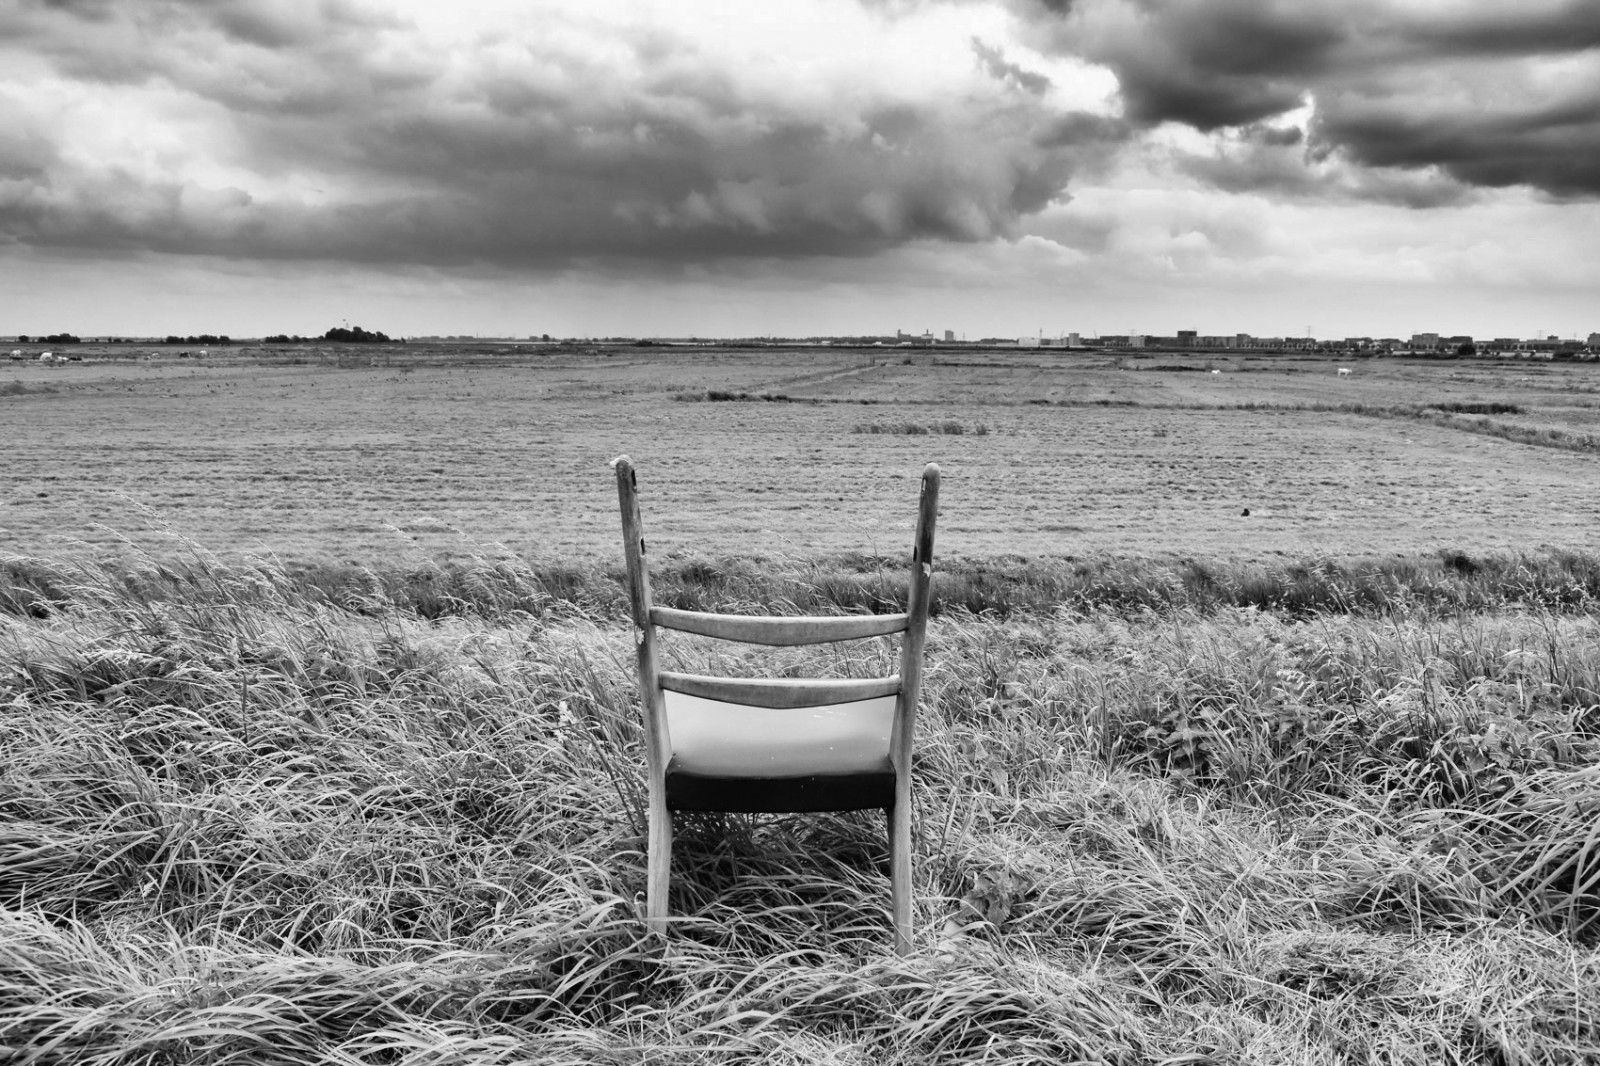 Amsterdams polder view with chair